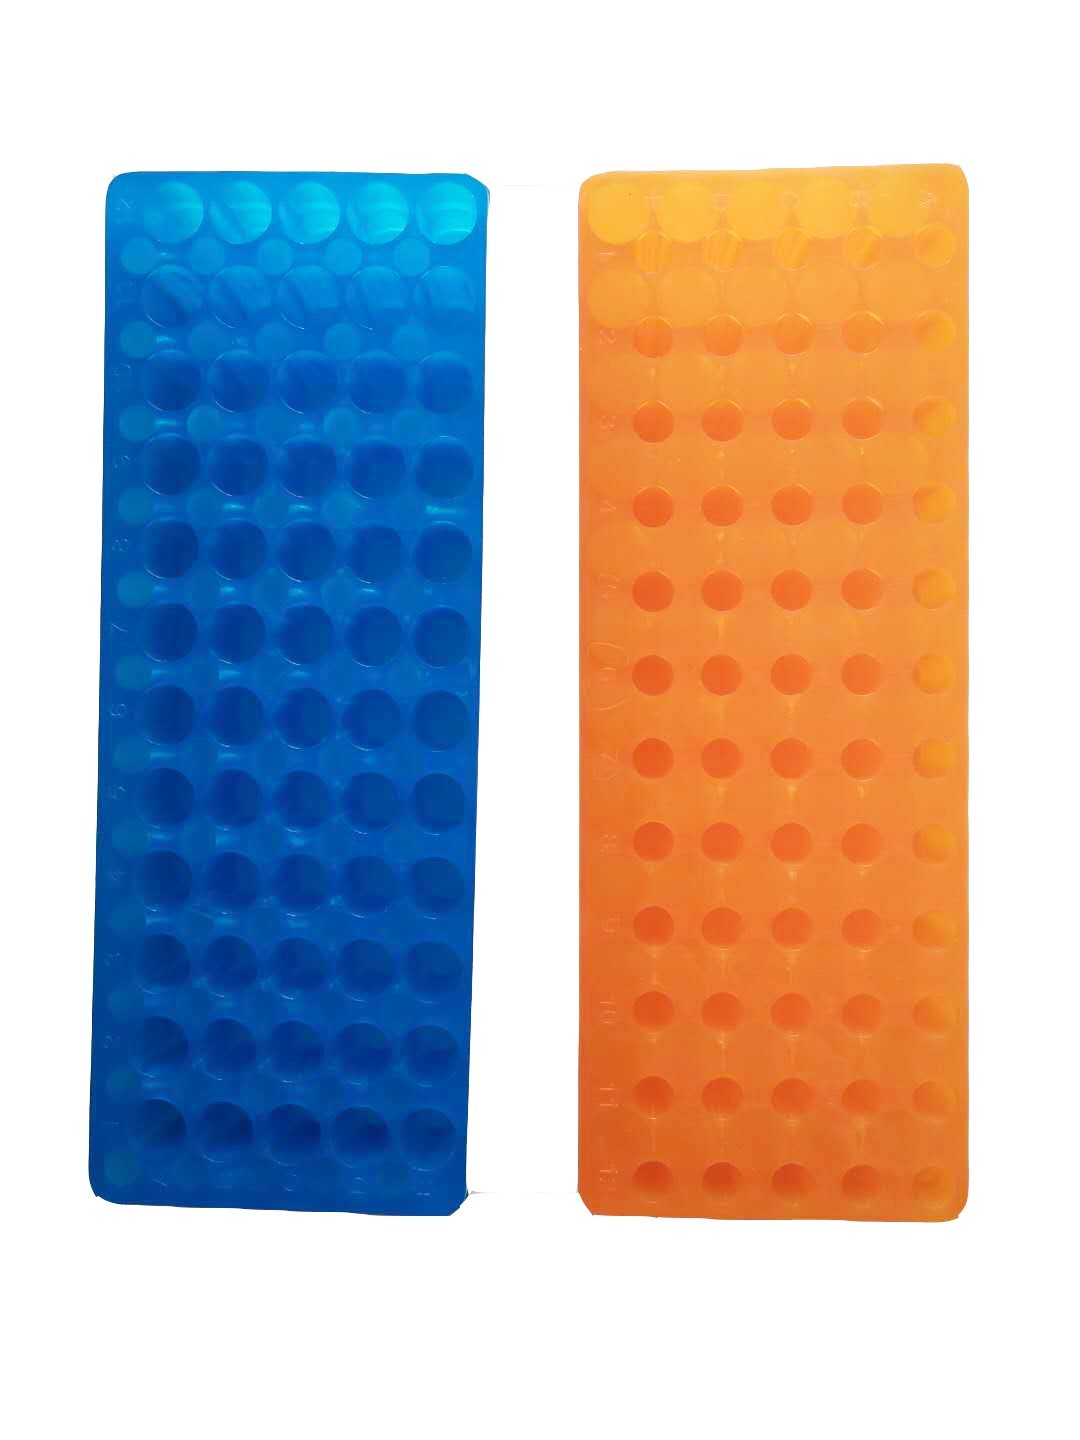 Orange/bleu Tube Rack double panneau 60  positions Polypropylè ne pour Microcentrifuge tubes 0, 5/1.5ml (lot de 2) Muhwa eCommerce Co. Ltd